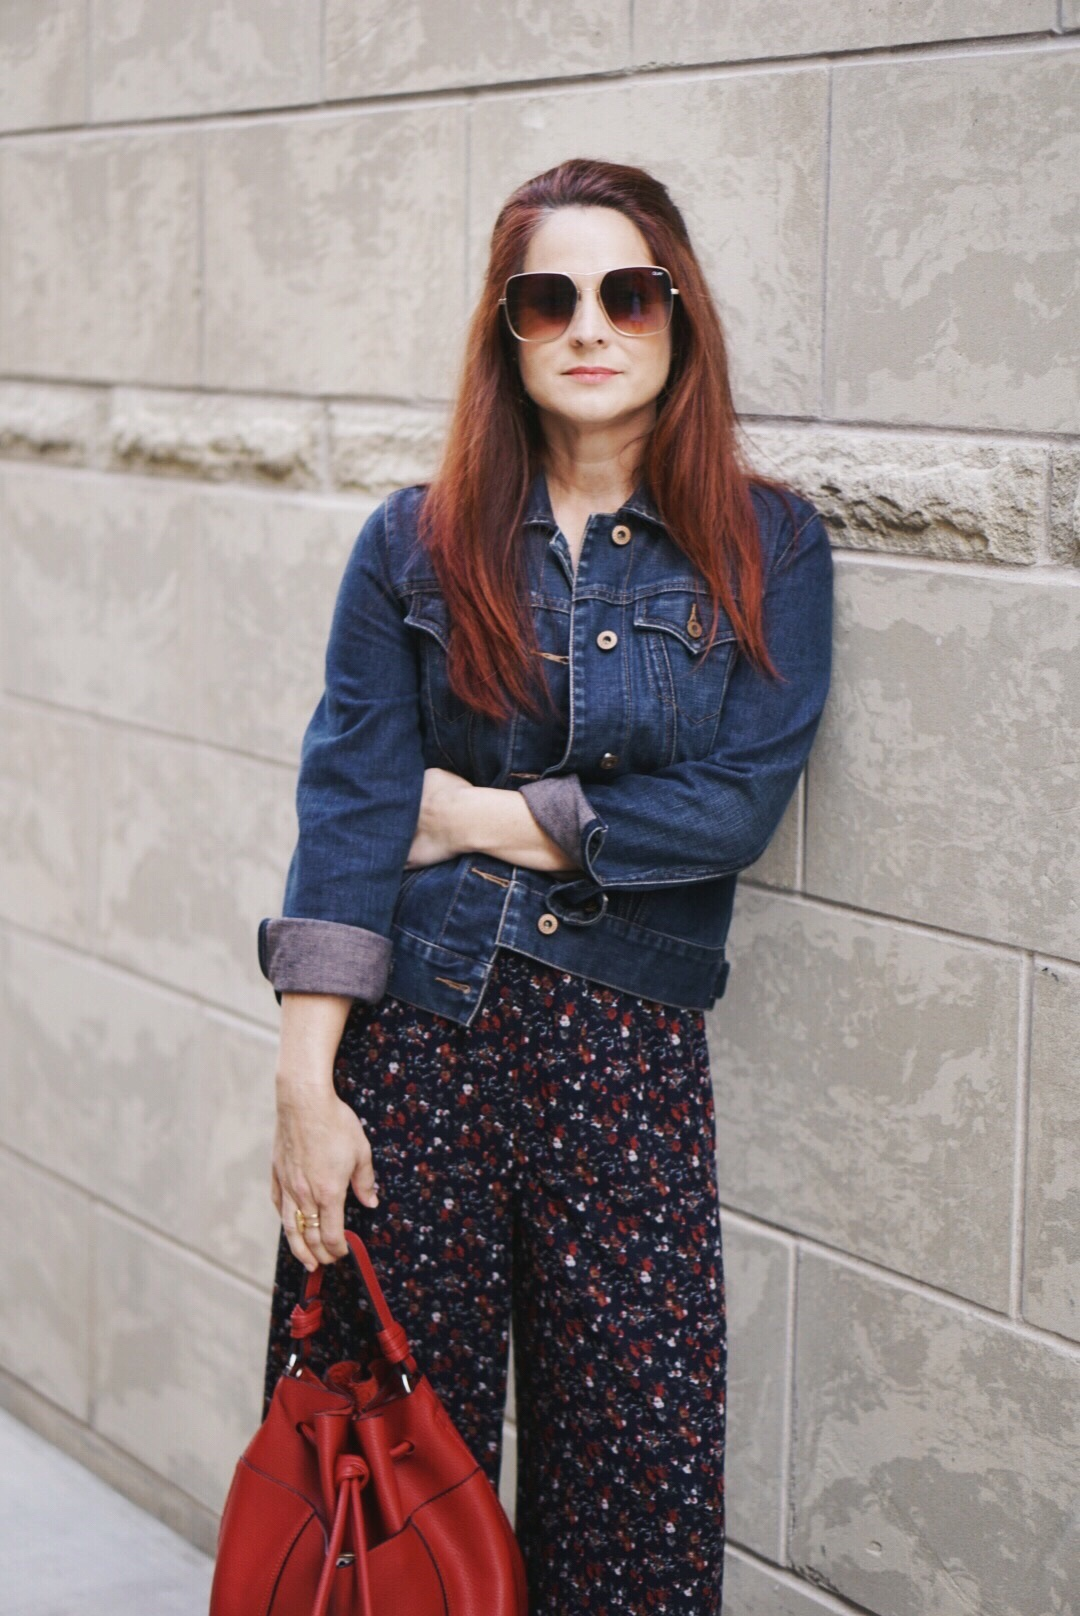 red handbag, floral pants, jean jacket, quay sunnies, rose bush pruning, cutting back tips